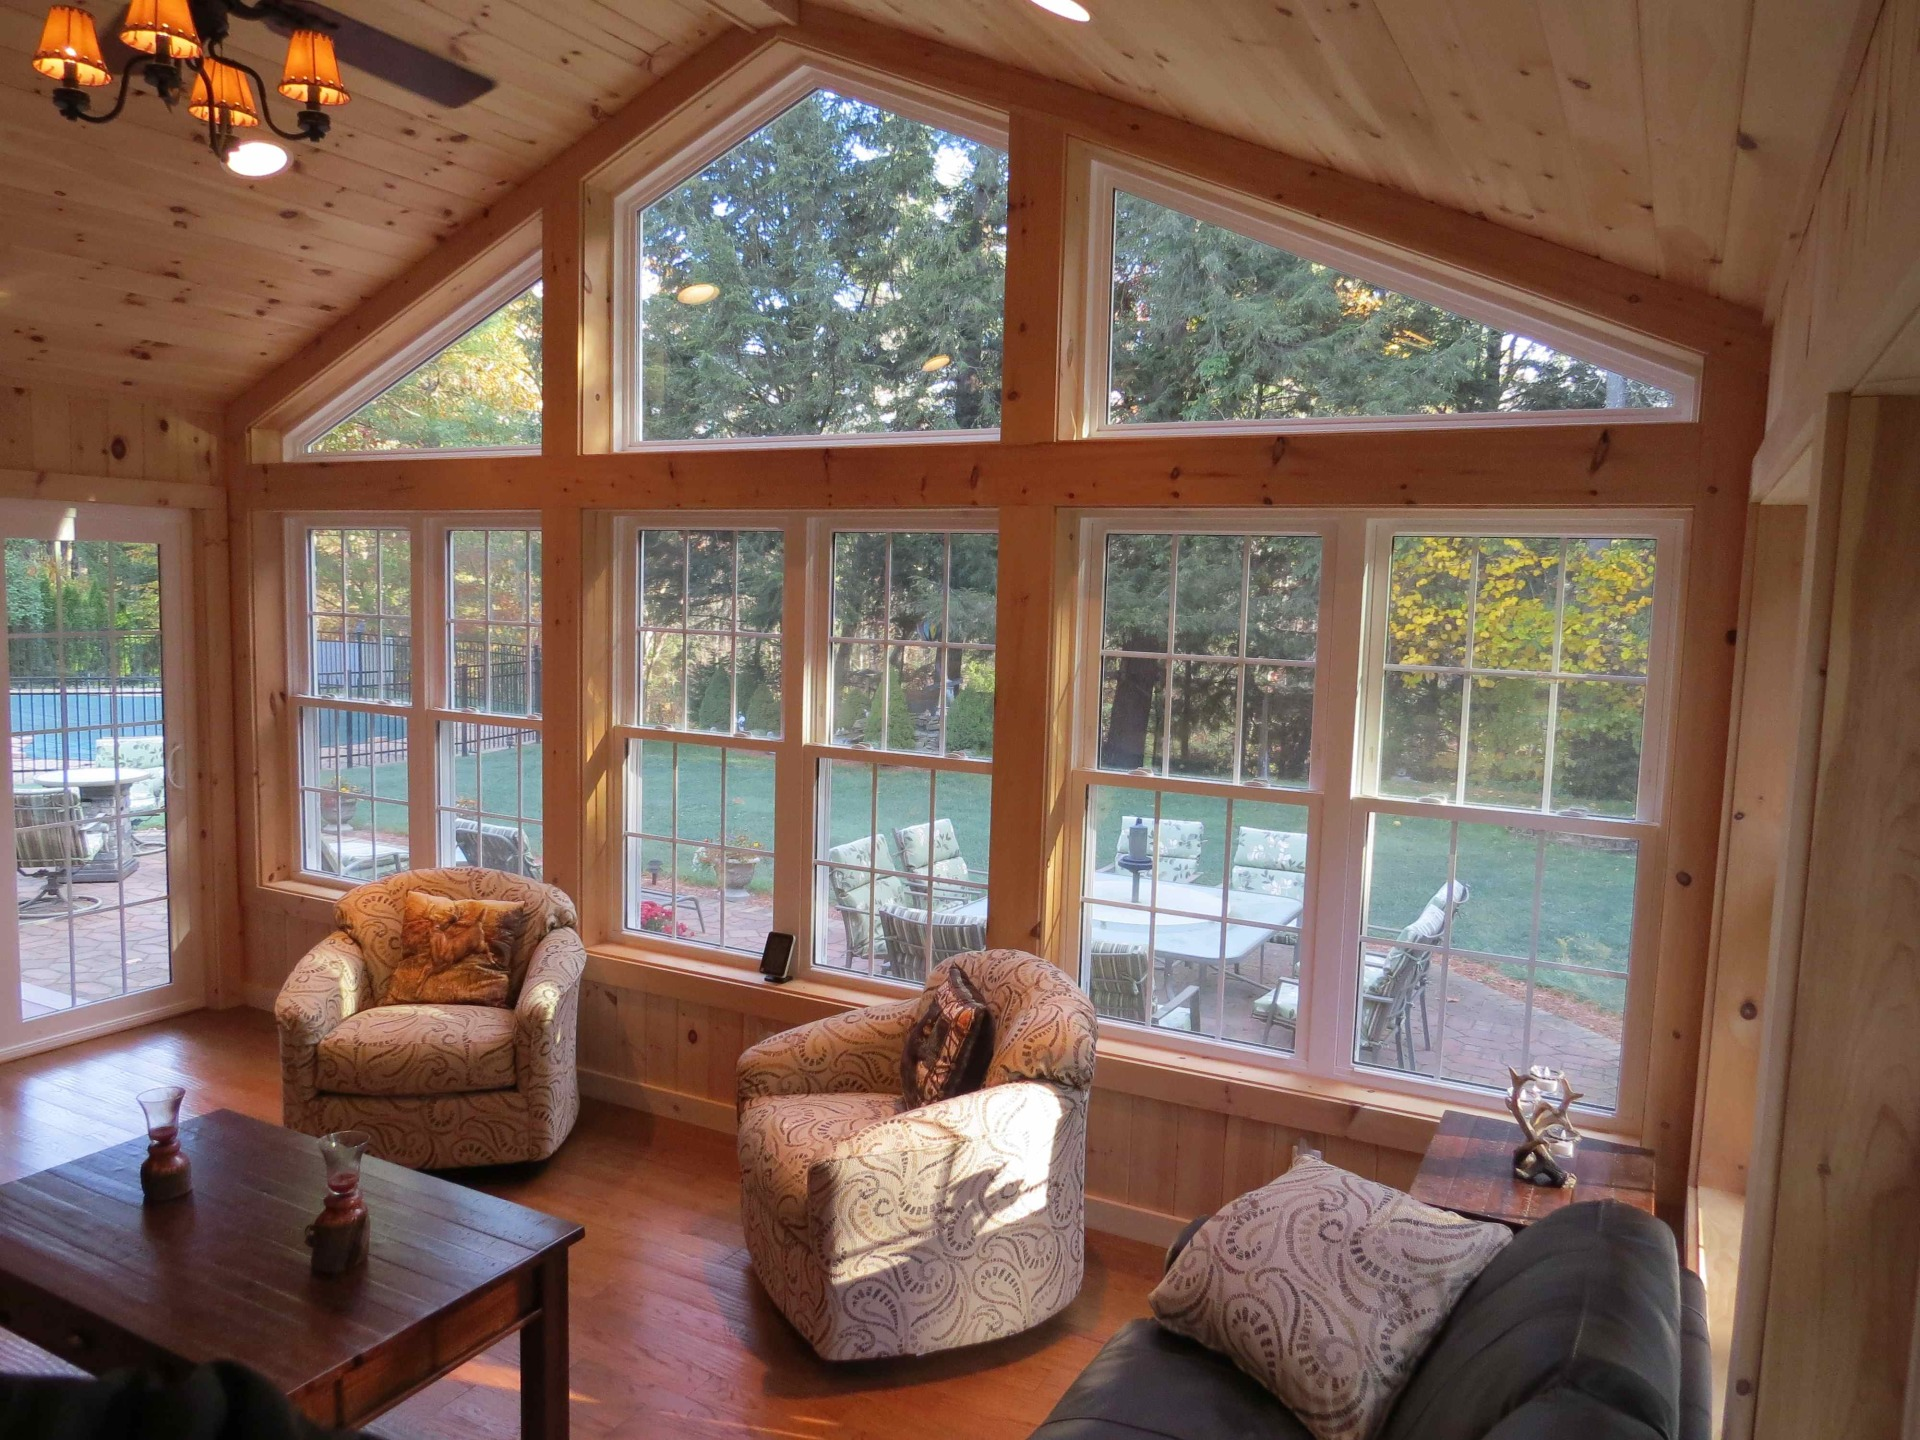 Morgan exteriors design build sunrooms and replacement for Four season room